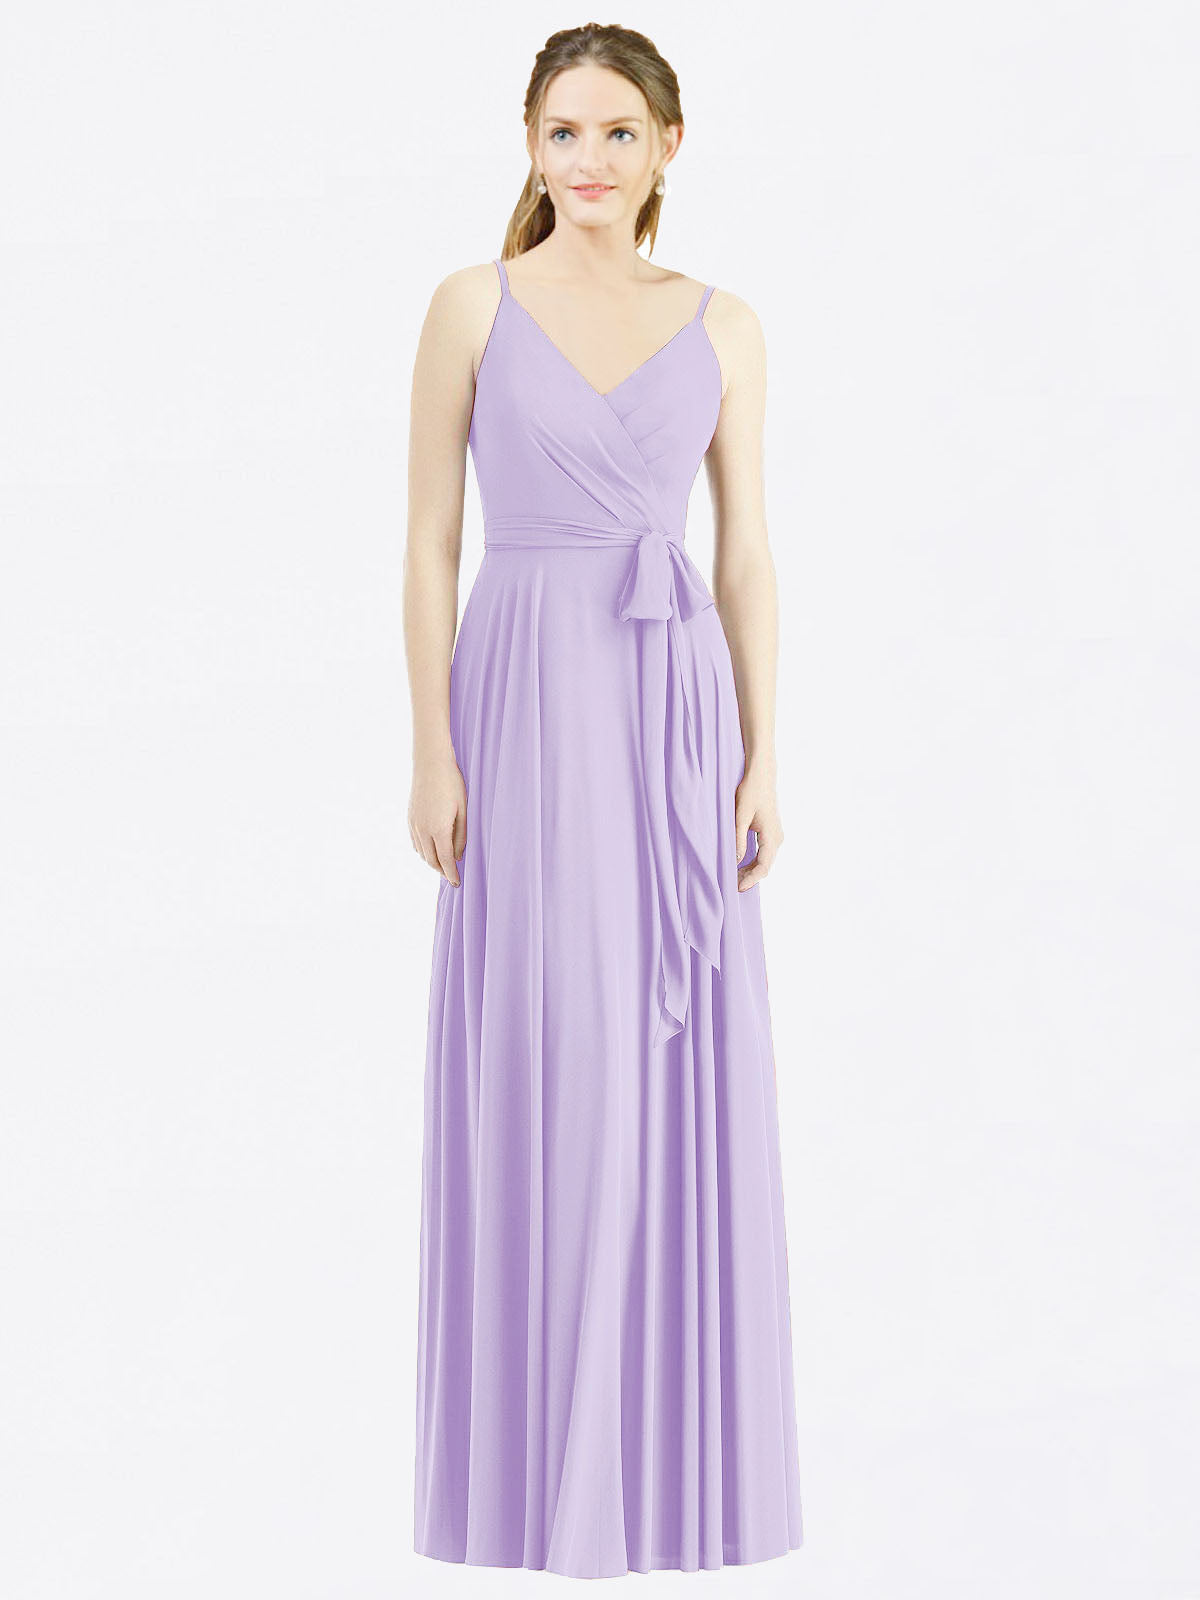 Long A-Line Spaghetti Straps, V-Neck Sleeveless Lilac Chiffon Bridesmaid Dress Madilyn